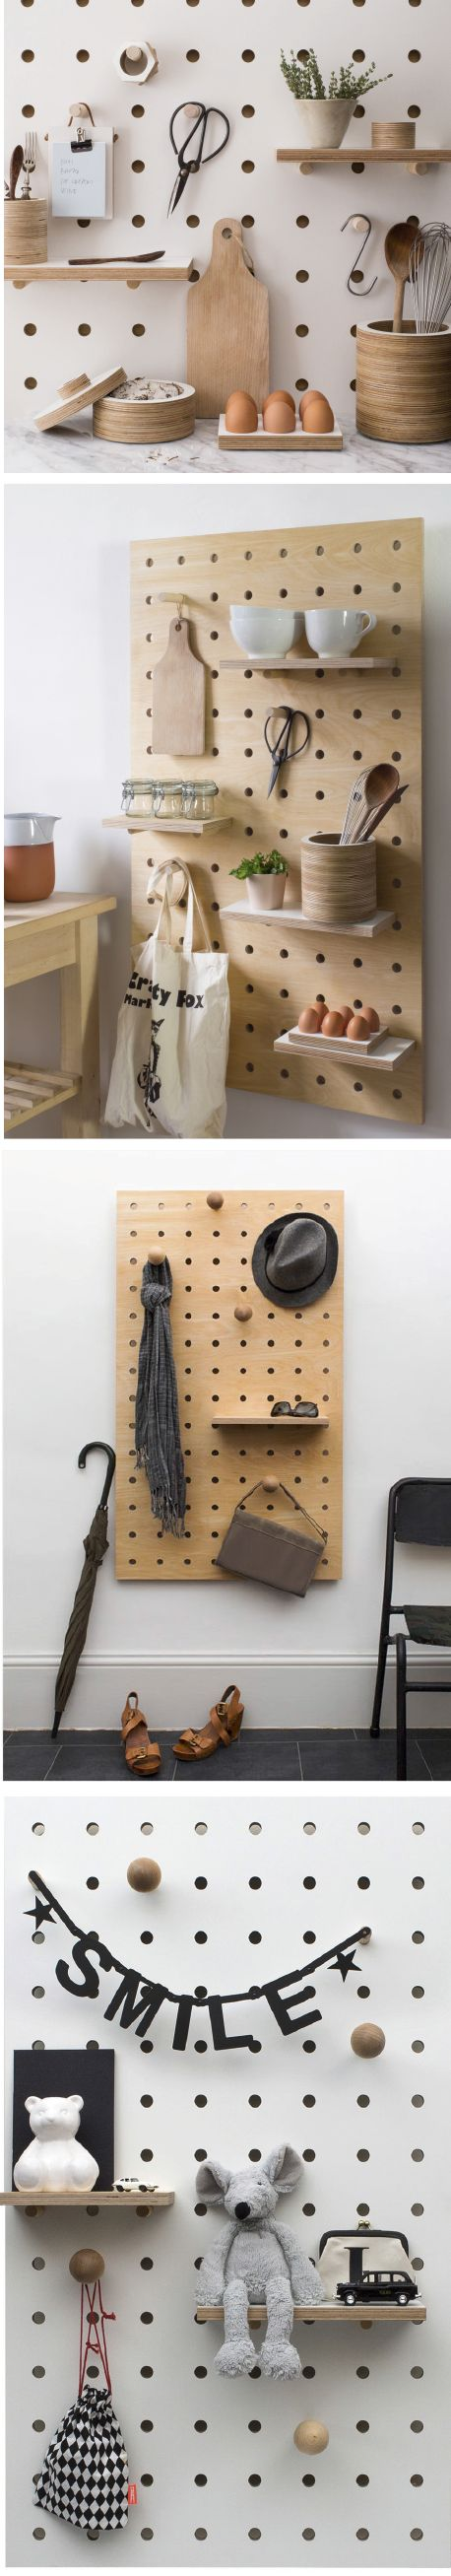 Pegboard storage idea